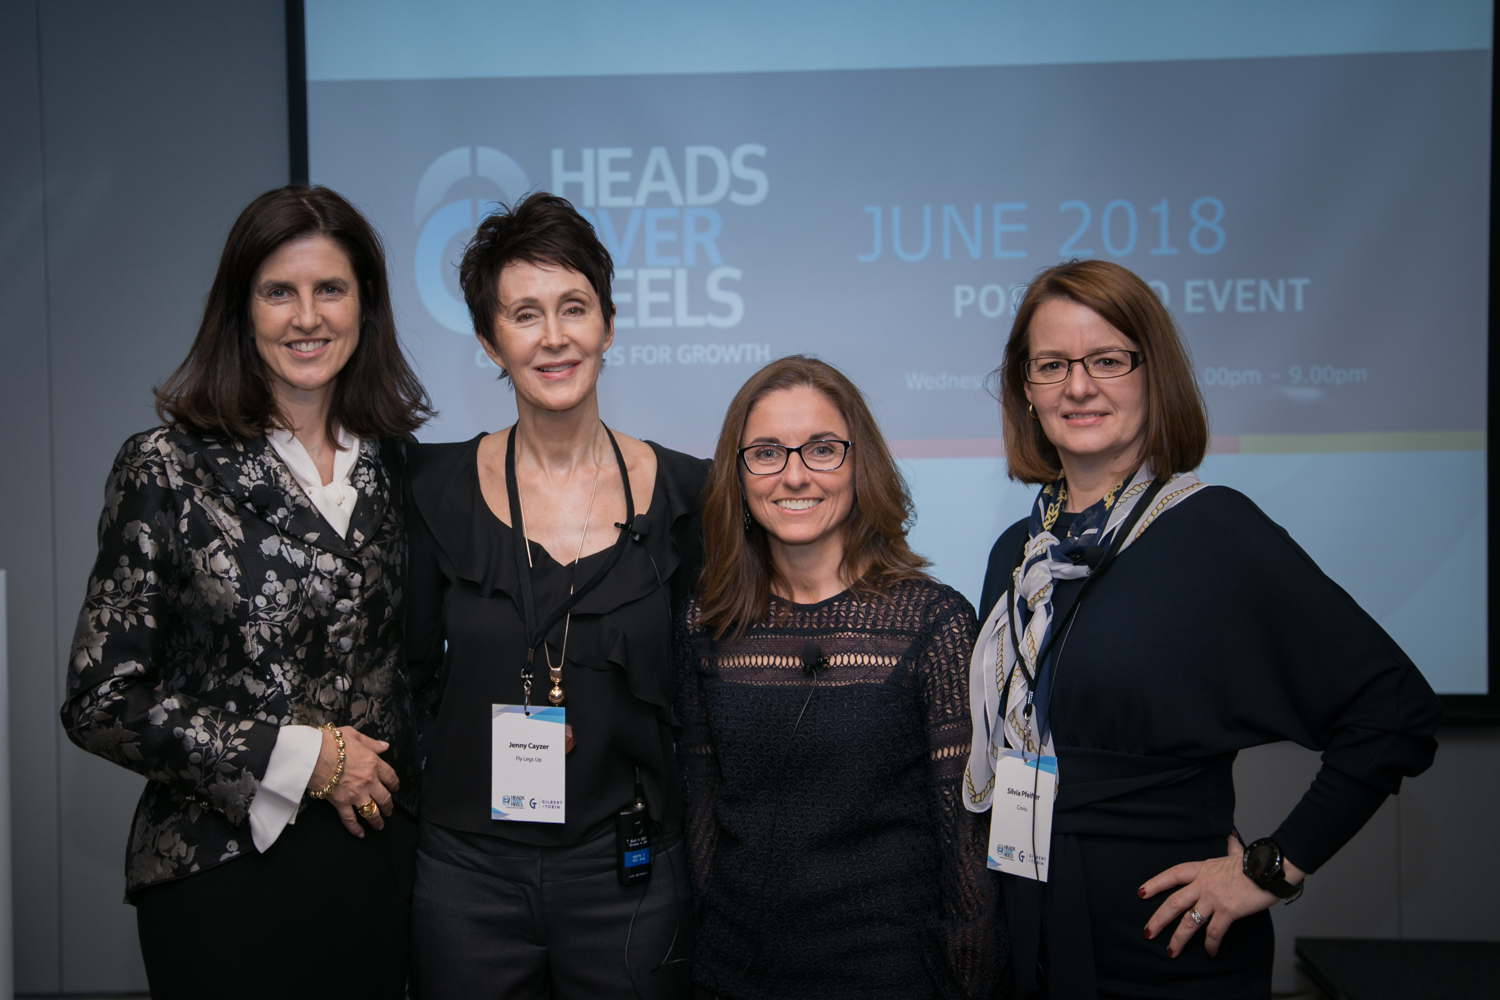 Carolyn presenting at Heads over Heels in June 2018 with HoH CEO, Nicola Swift, along with fellow entrepreneurs Jenny Cayzer of FlyLegsUp and Sylvia Pfieffer of Coviu.